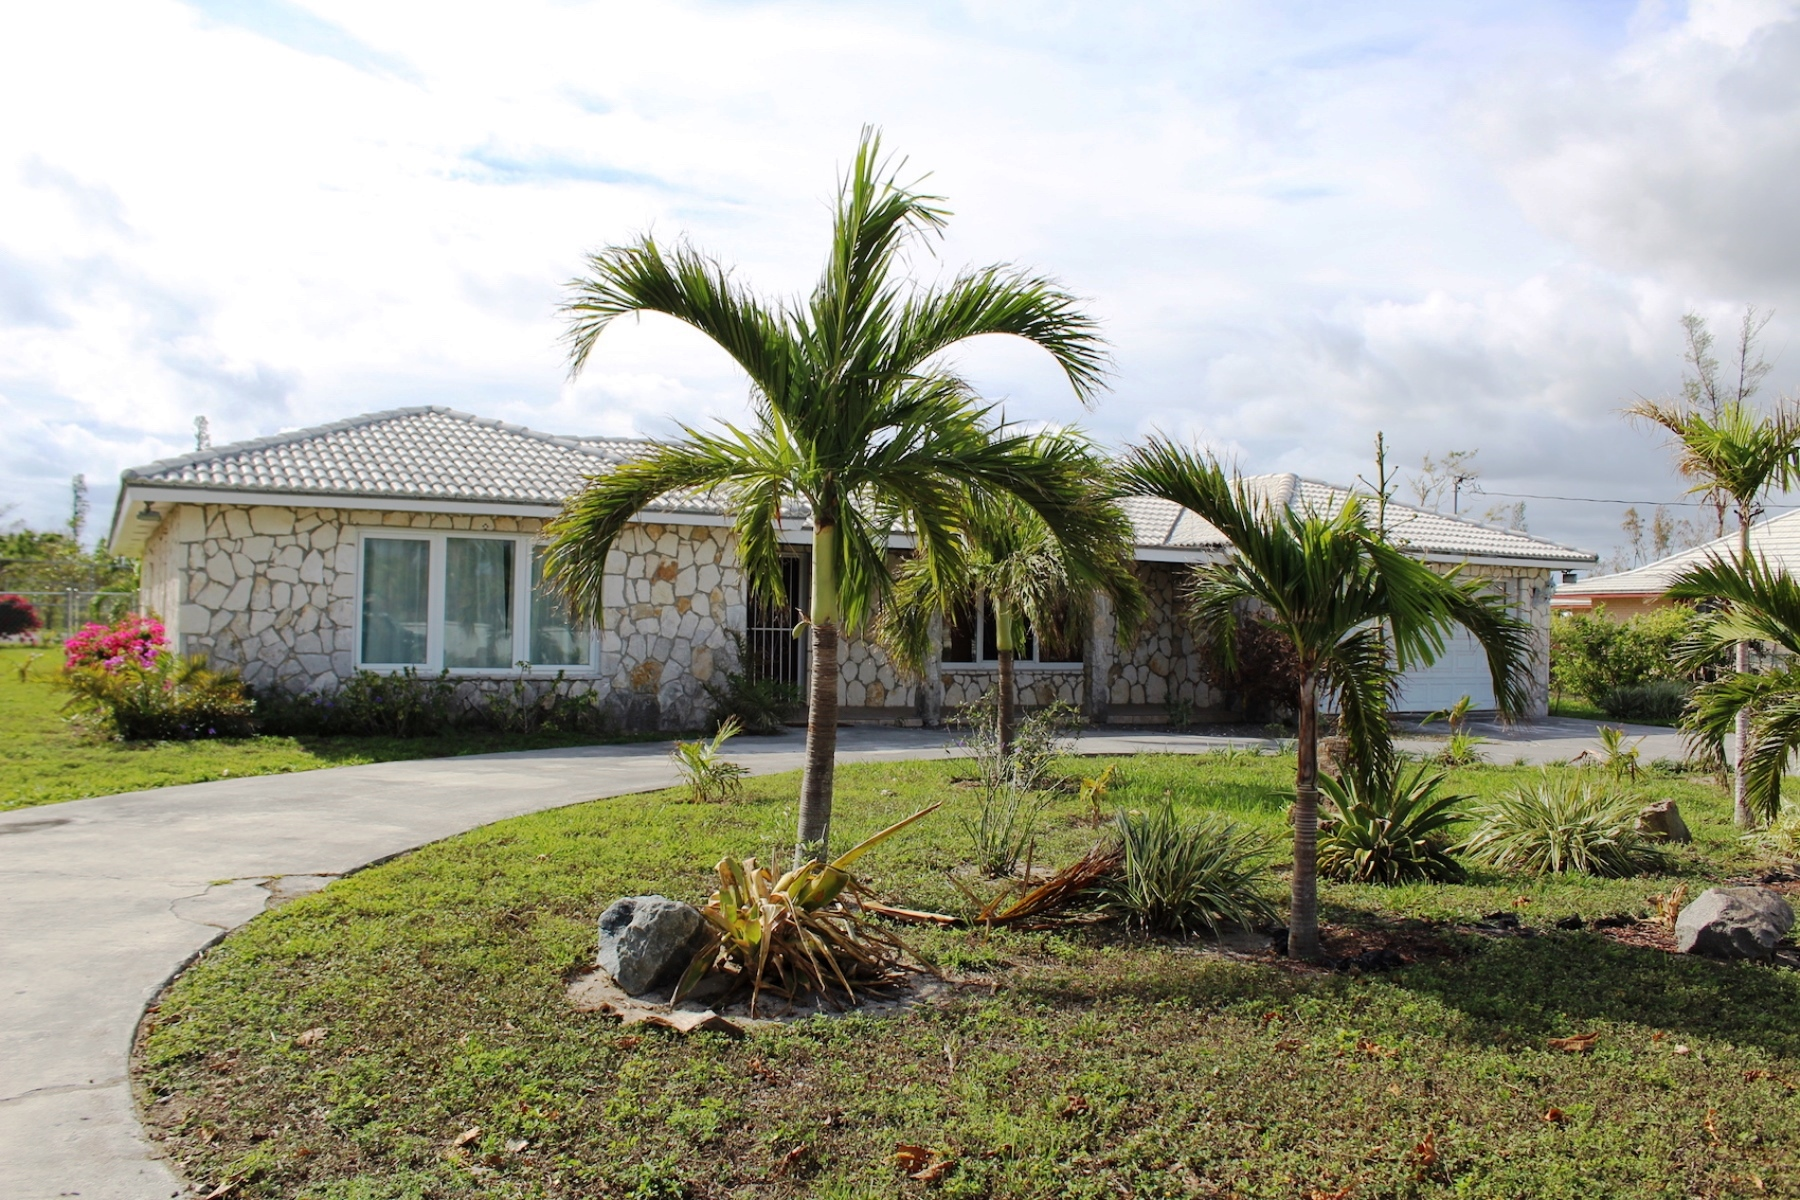 Single Family Home for Rent at Rental Home Near The Beach Lucayan Beach, Grand Bahama, Bahamas